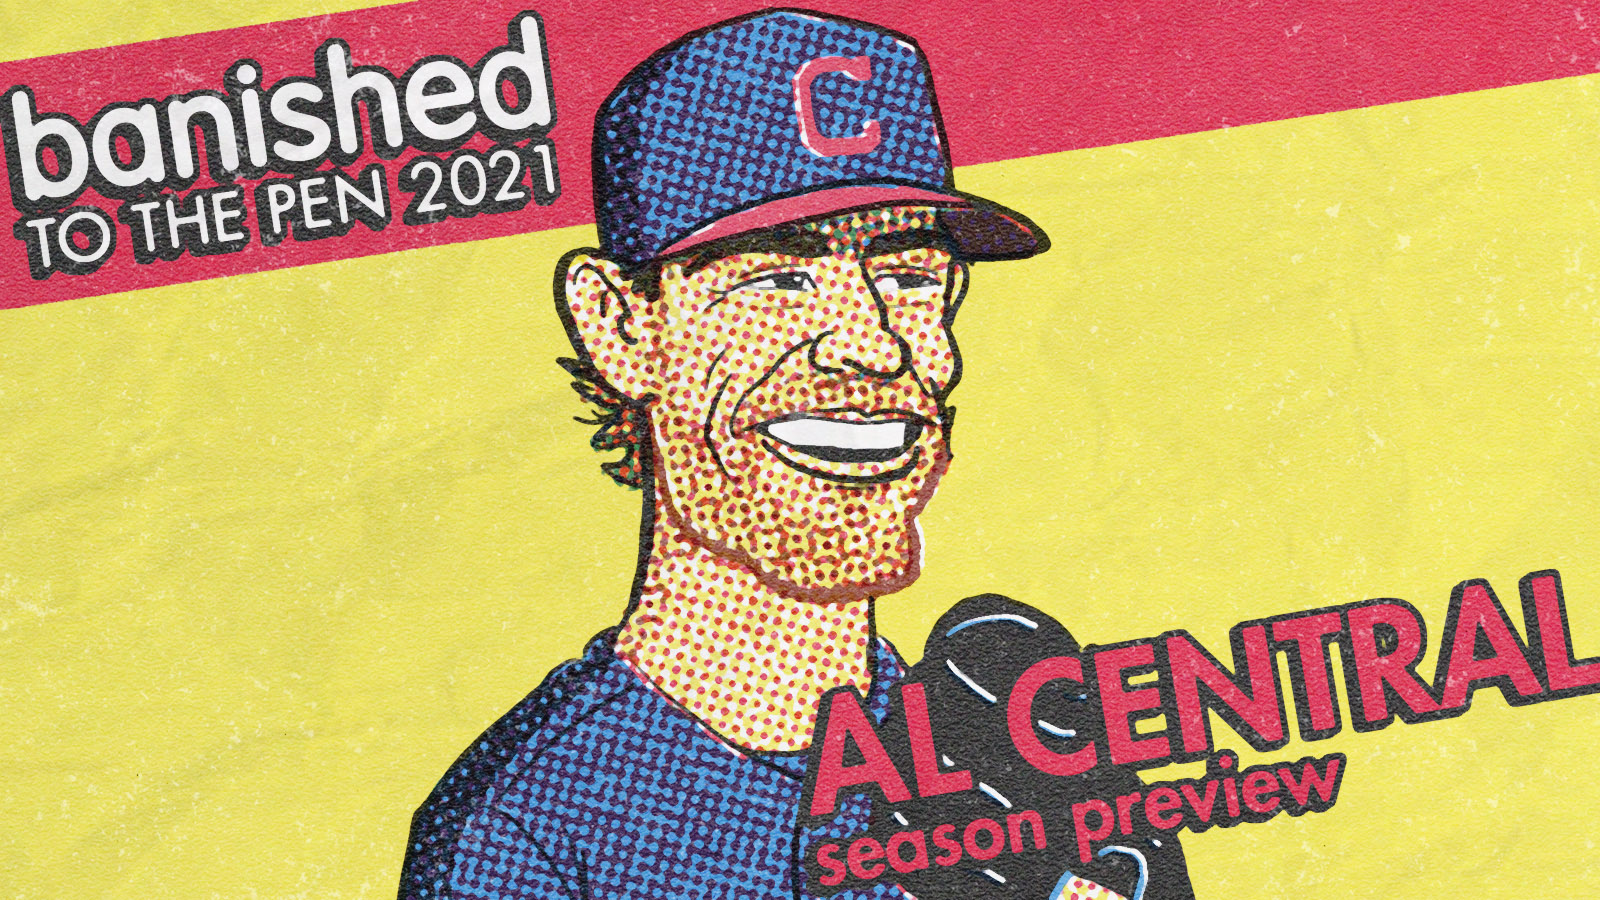 Season Previews 2021 - AL Central (Shane Bieber))